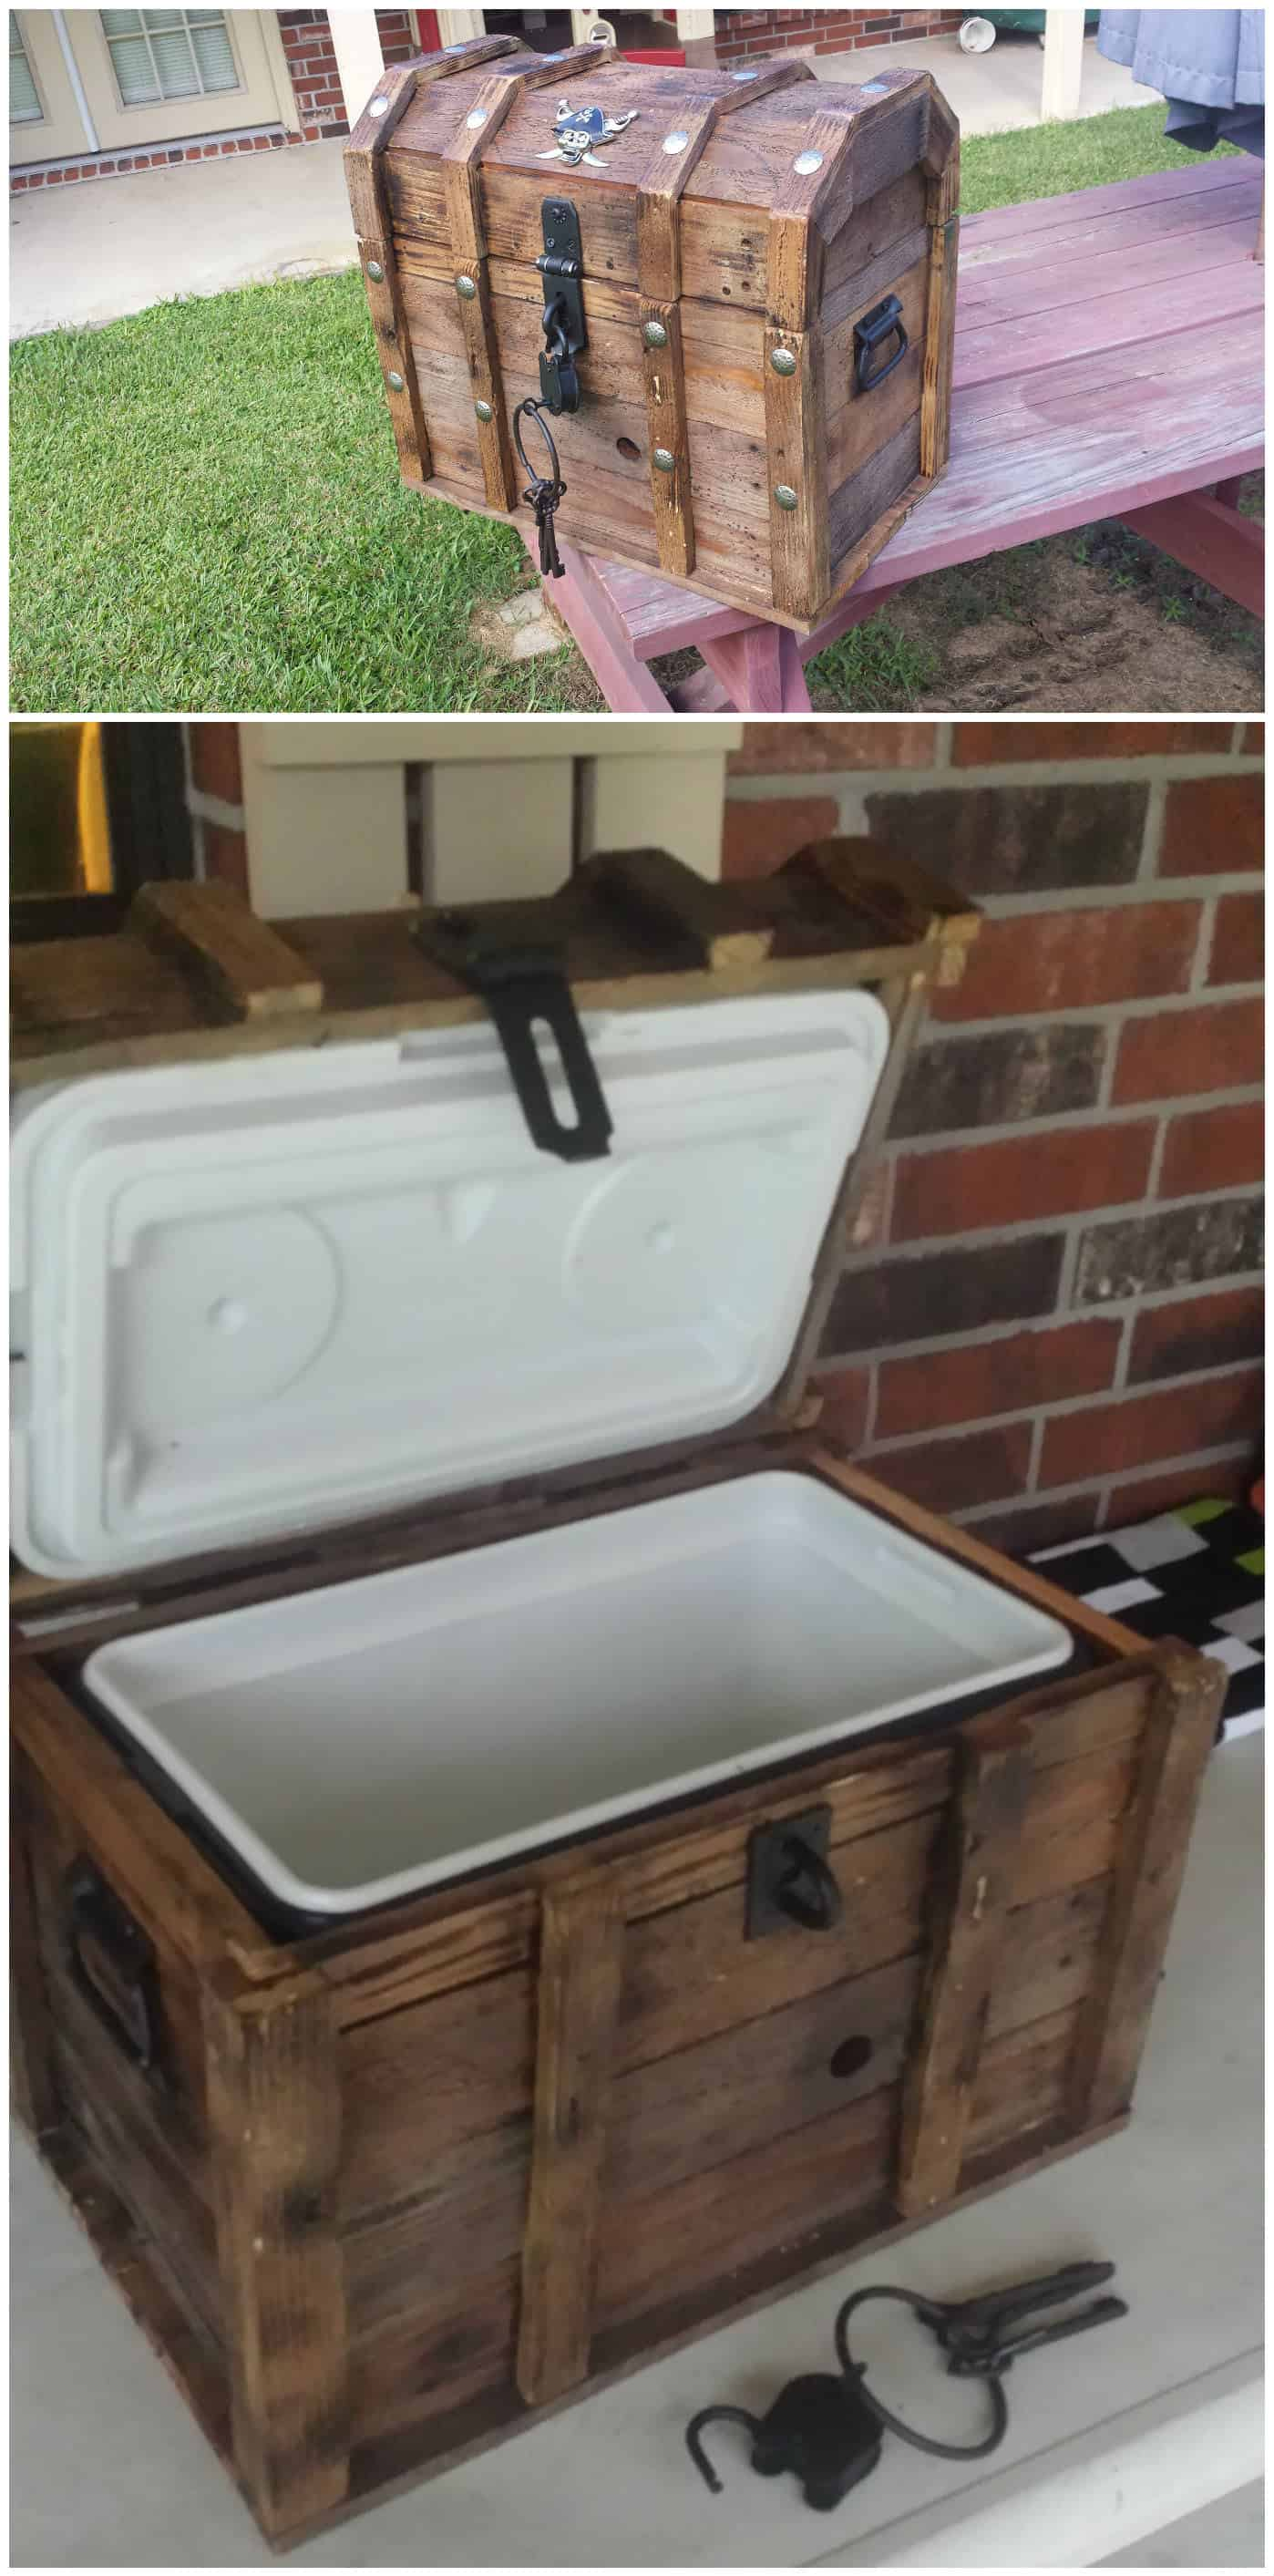 Pirate Treasure Chest Cooler Out Of 2 Pallets • Pallet Ideas • 1001 Pallets